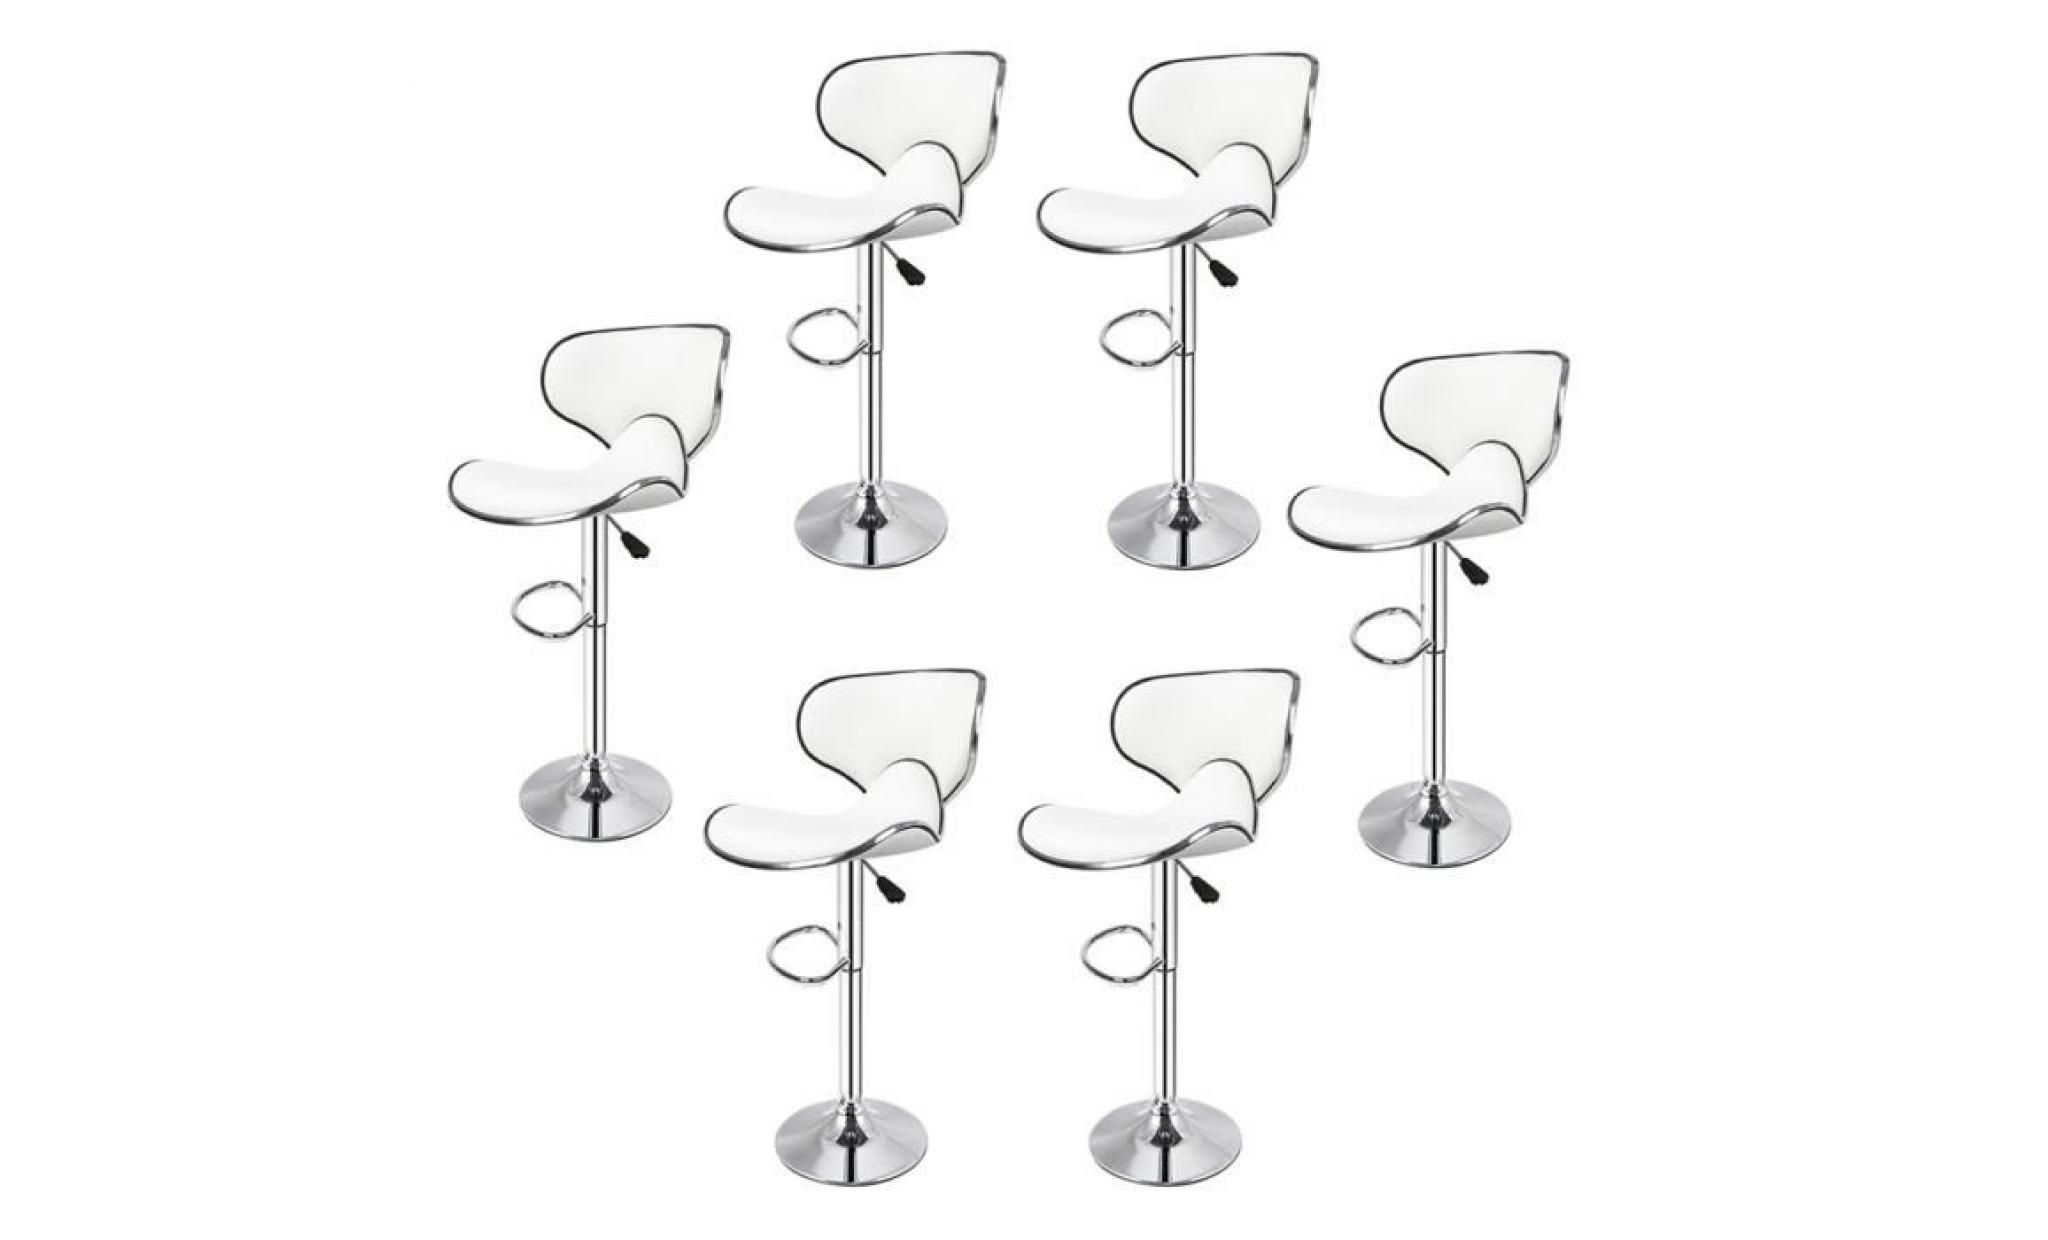 lot de 6 chaise de bar tabourets de bar blanc